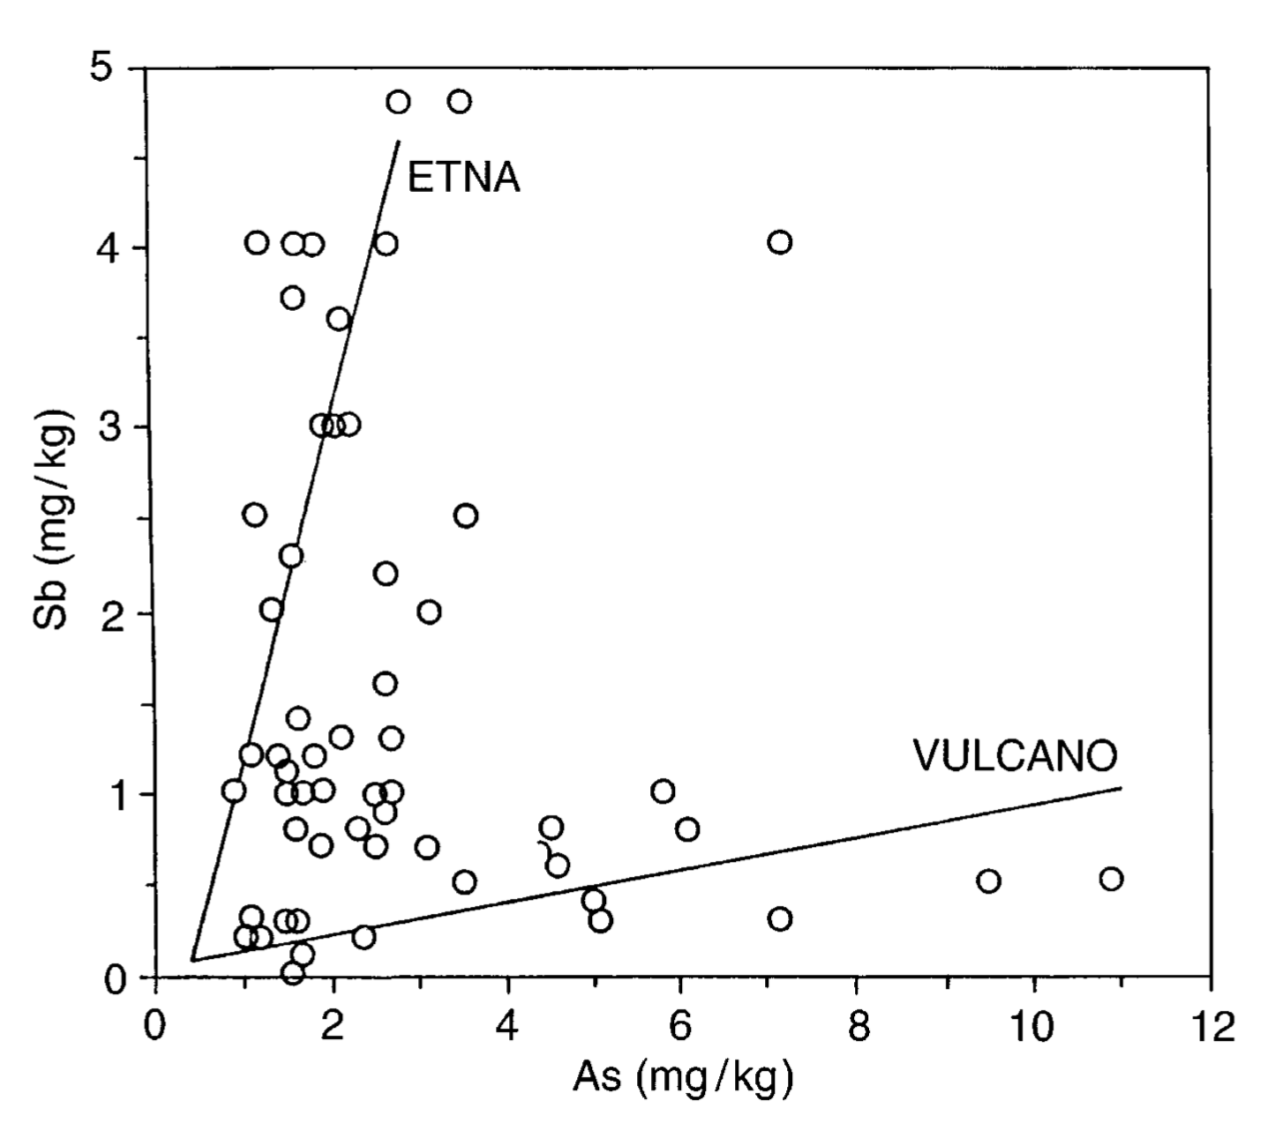 Antimony and arsenic content in Lichens growing around different volcanic areas.  Grasso et. al 1998.